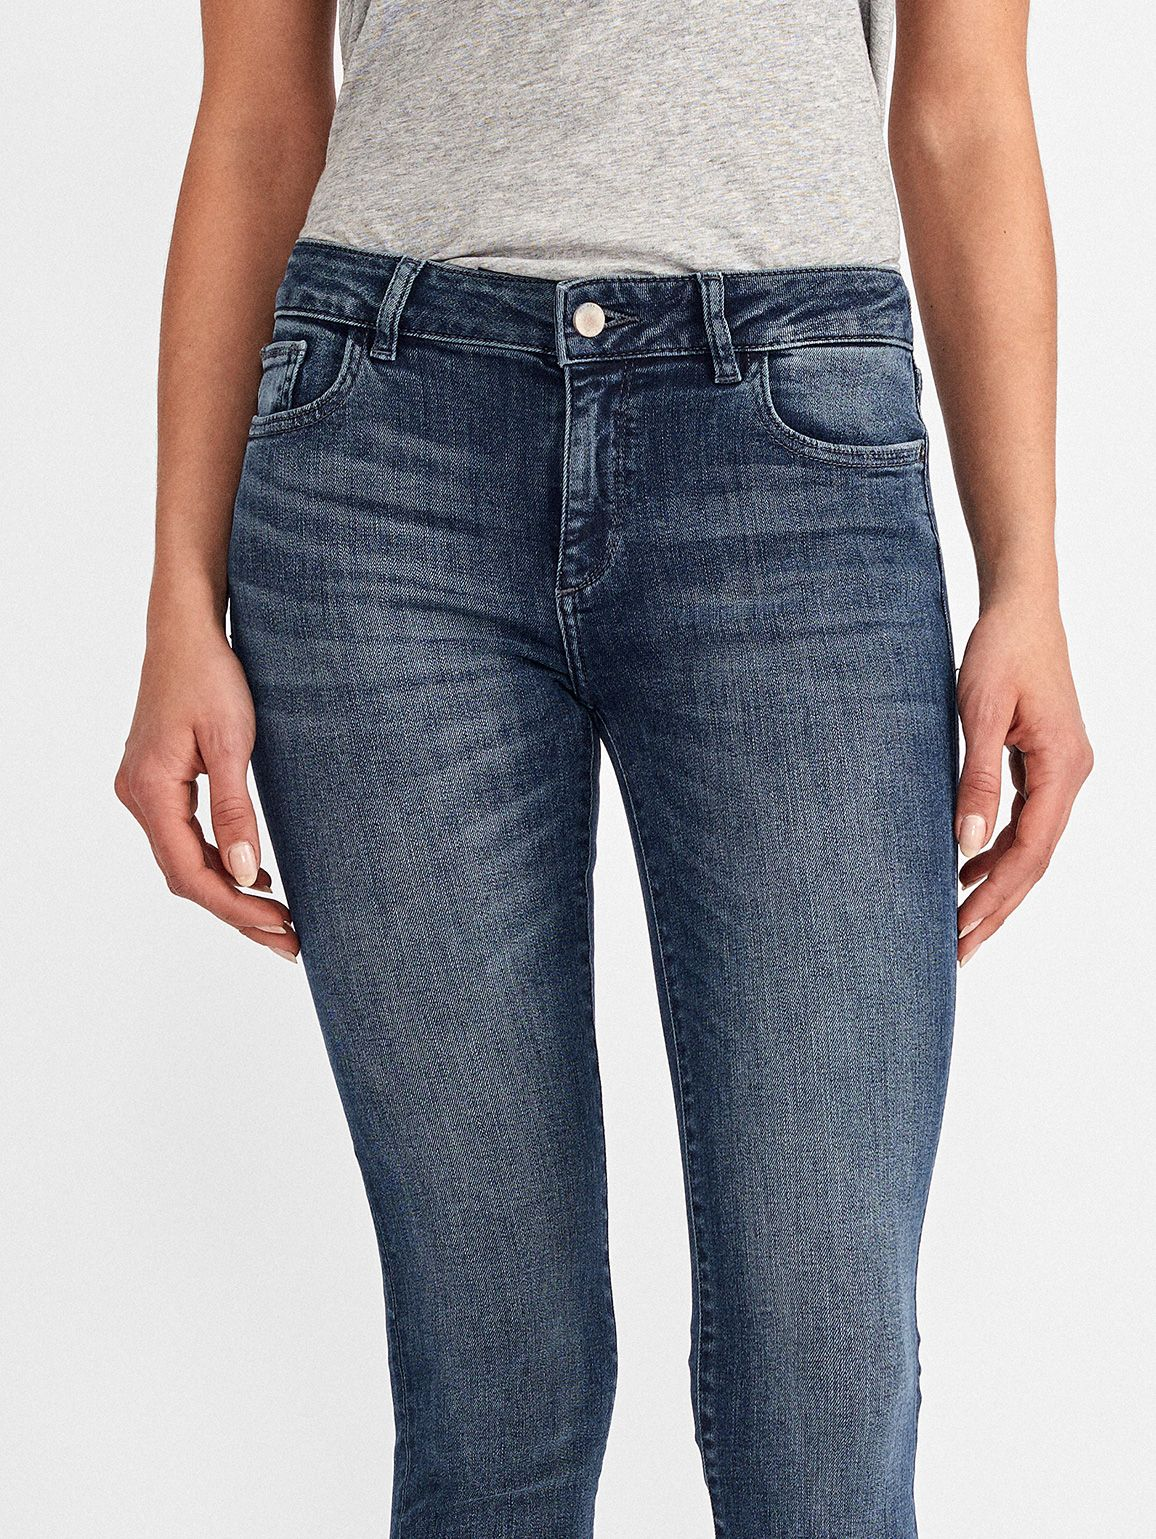 Women - Emma Low Rise Skinny | Donahue - DL1961